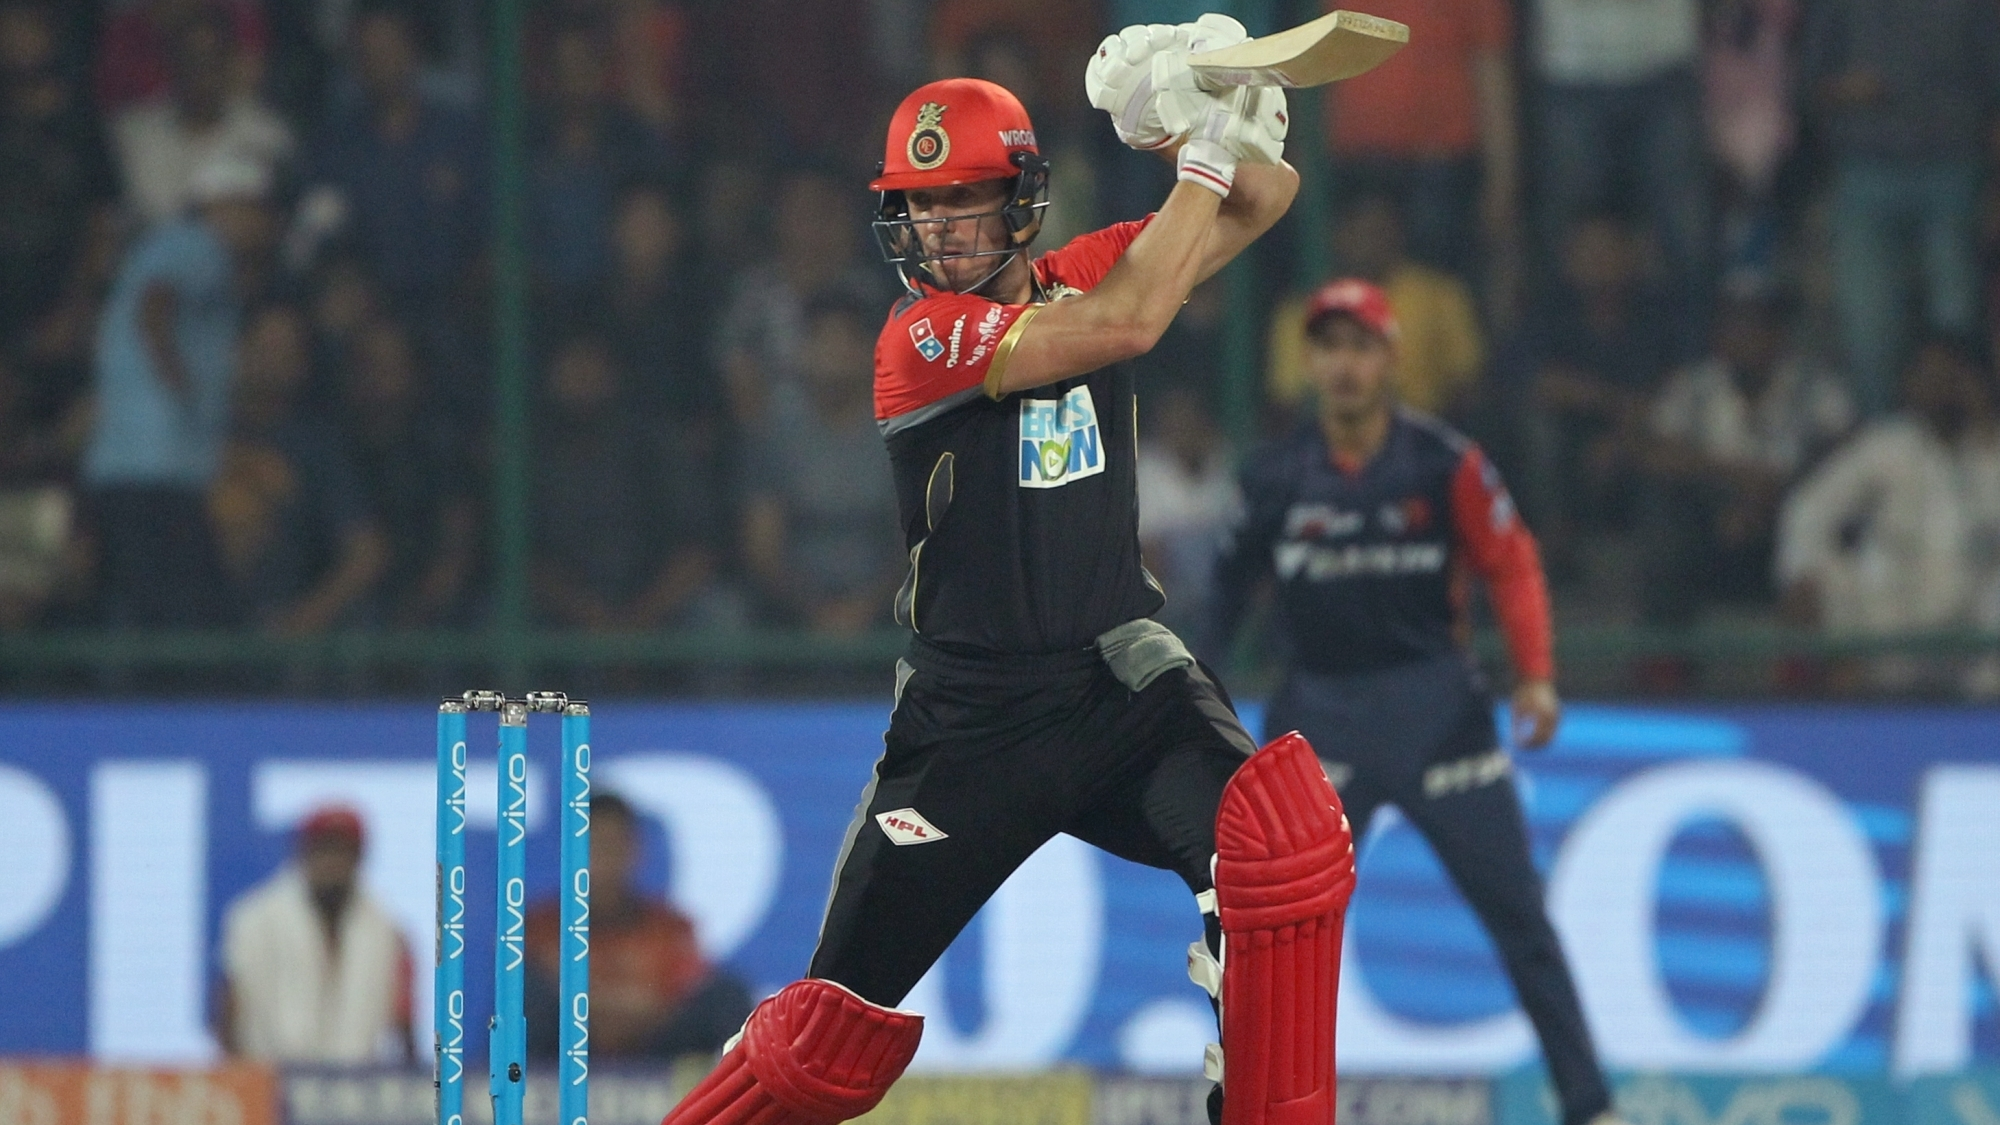 IPL 2018: AB de Villiers feels privileged and motivated to represent RCB